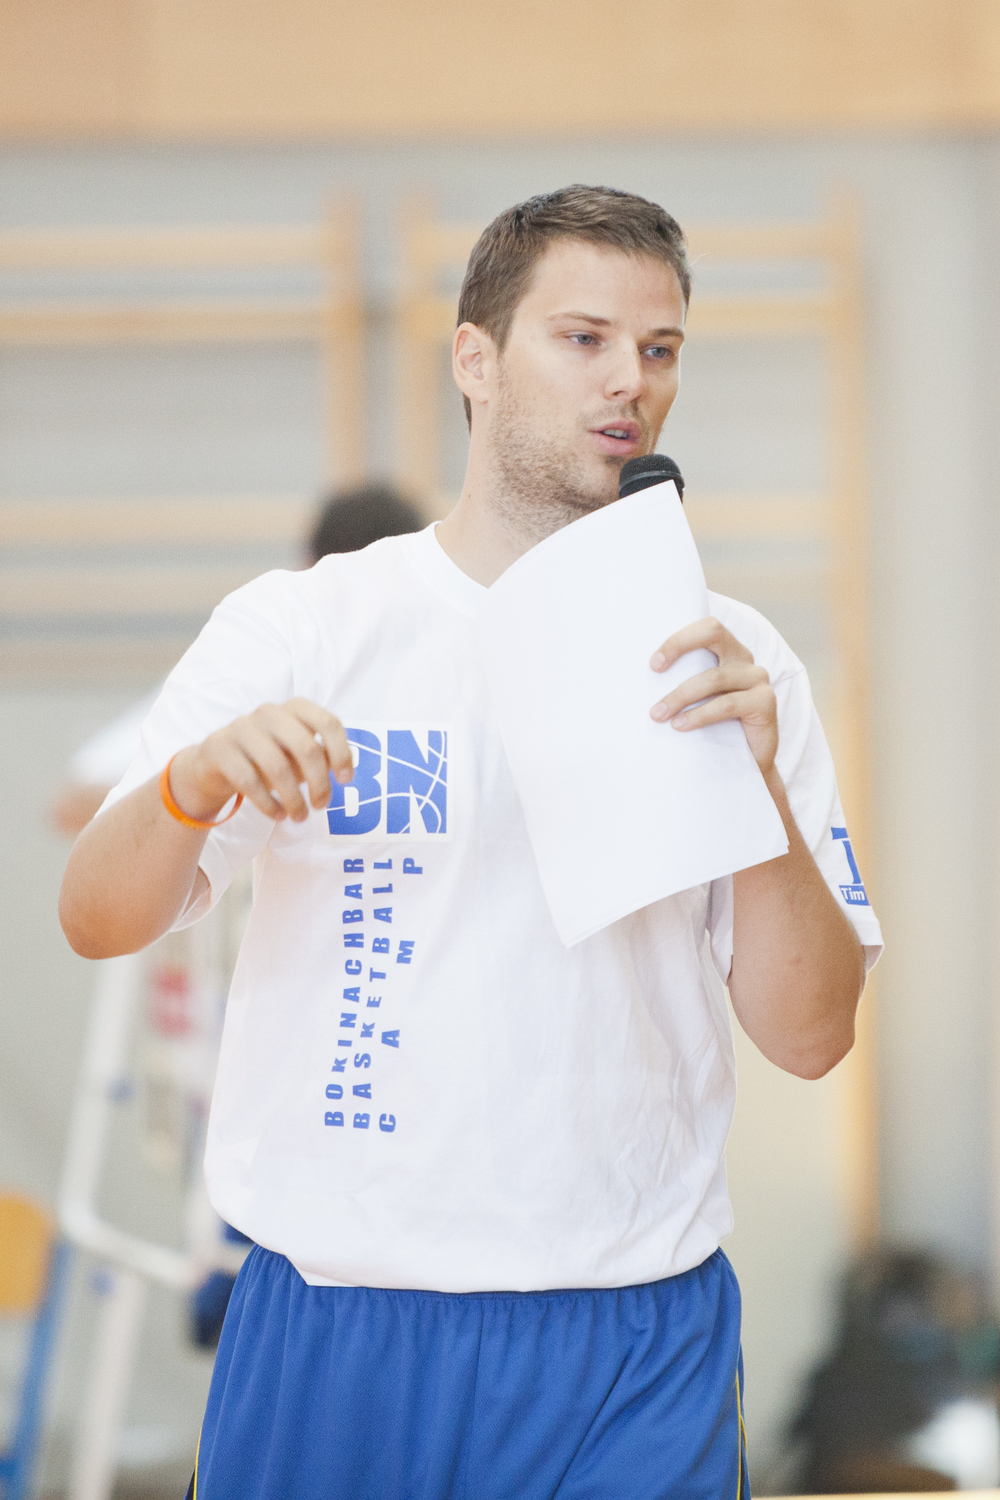 Grega is currently active as a basketball coach, but during the summer will work as a basketball analyst for RTV Slovenia in Fiba Basketball World Cup in Spain.